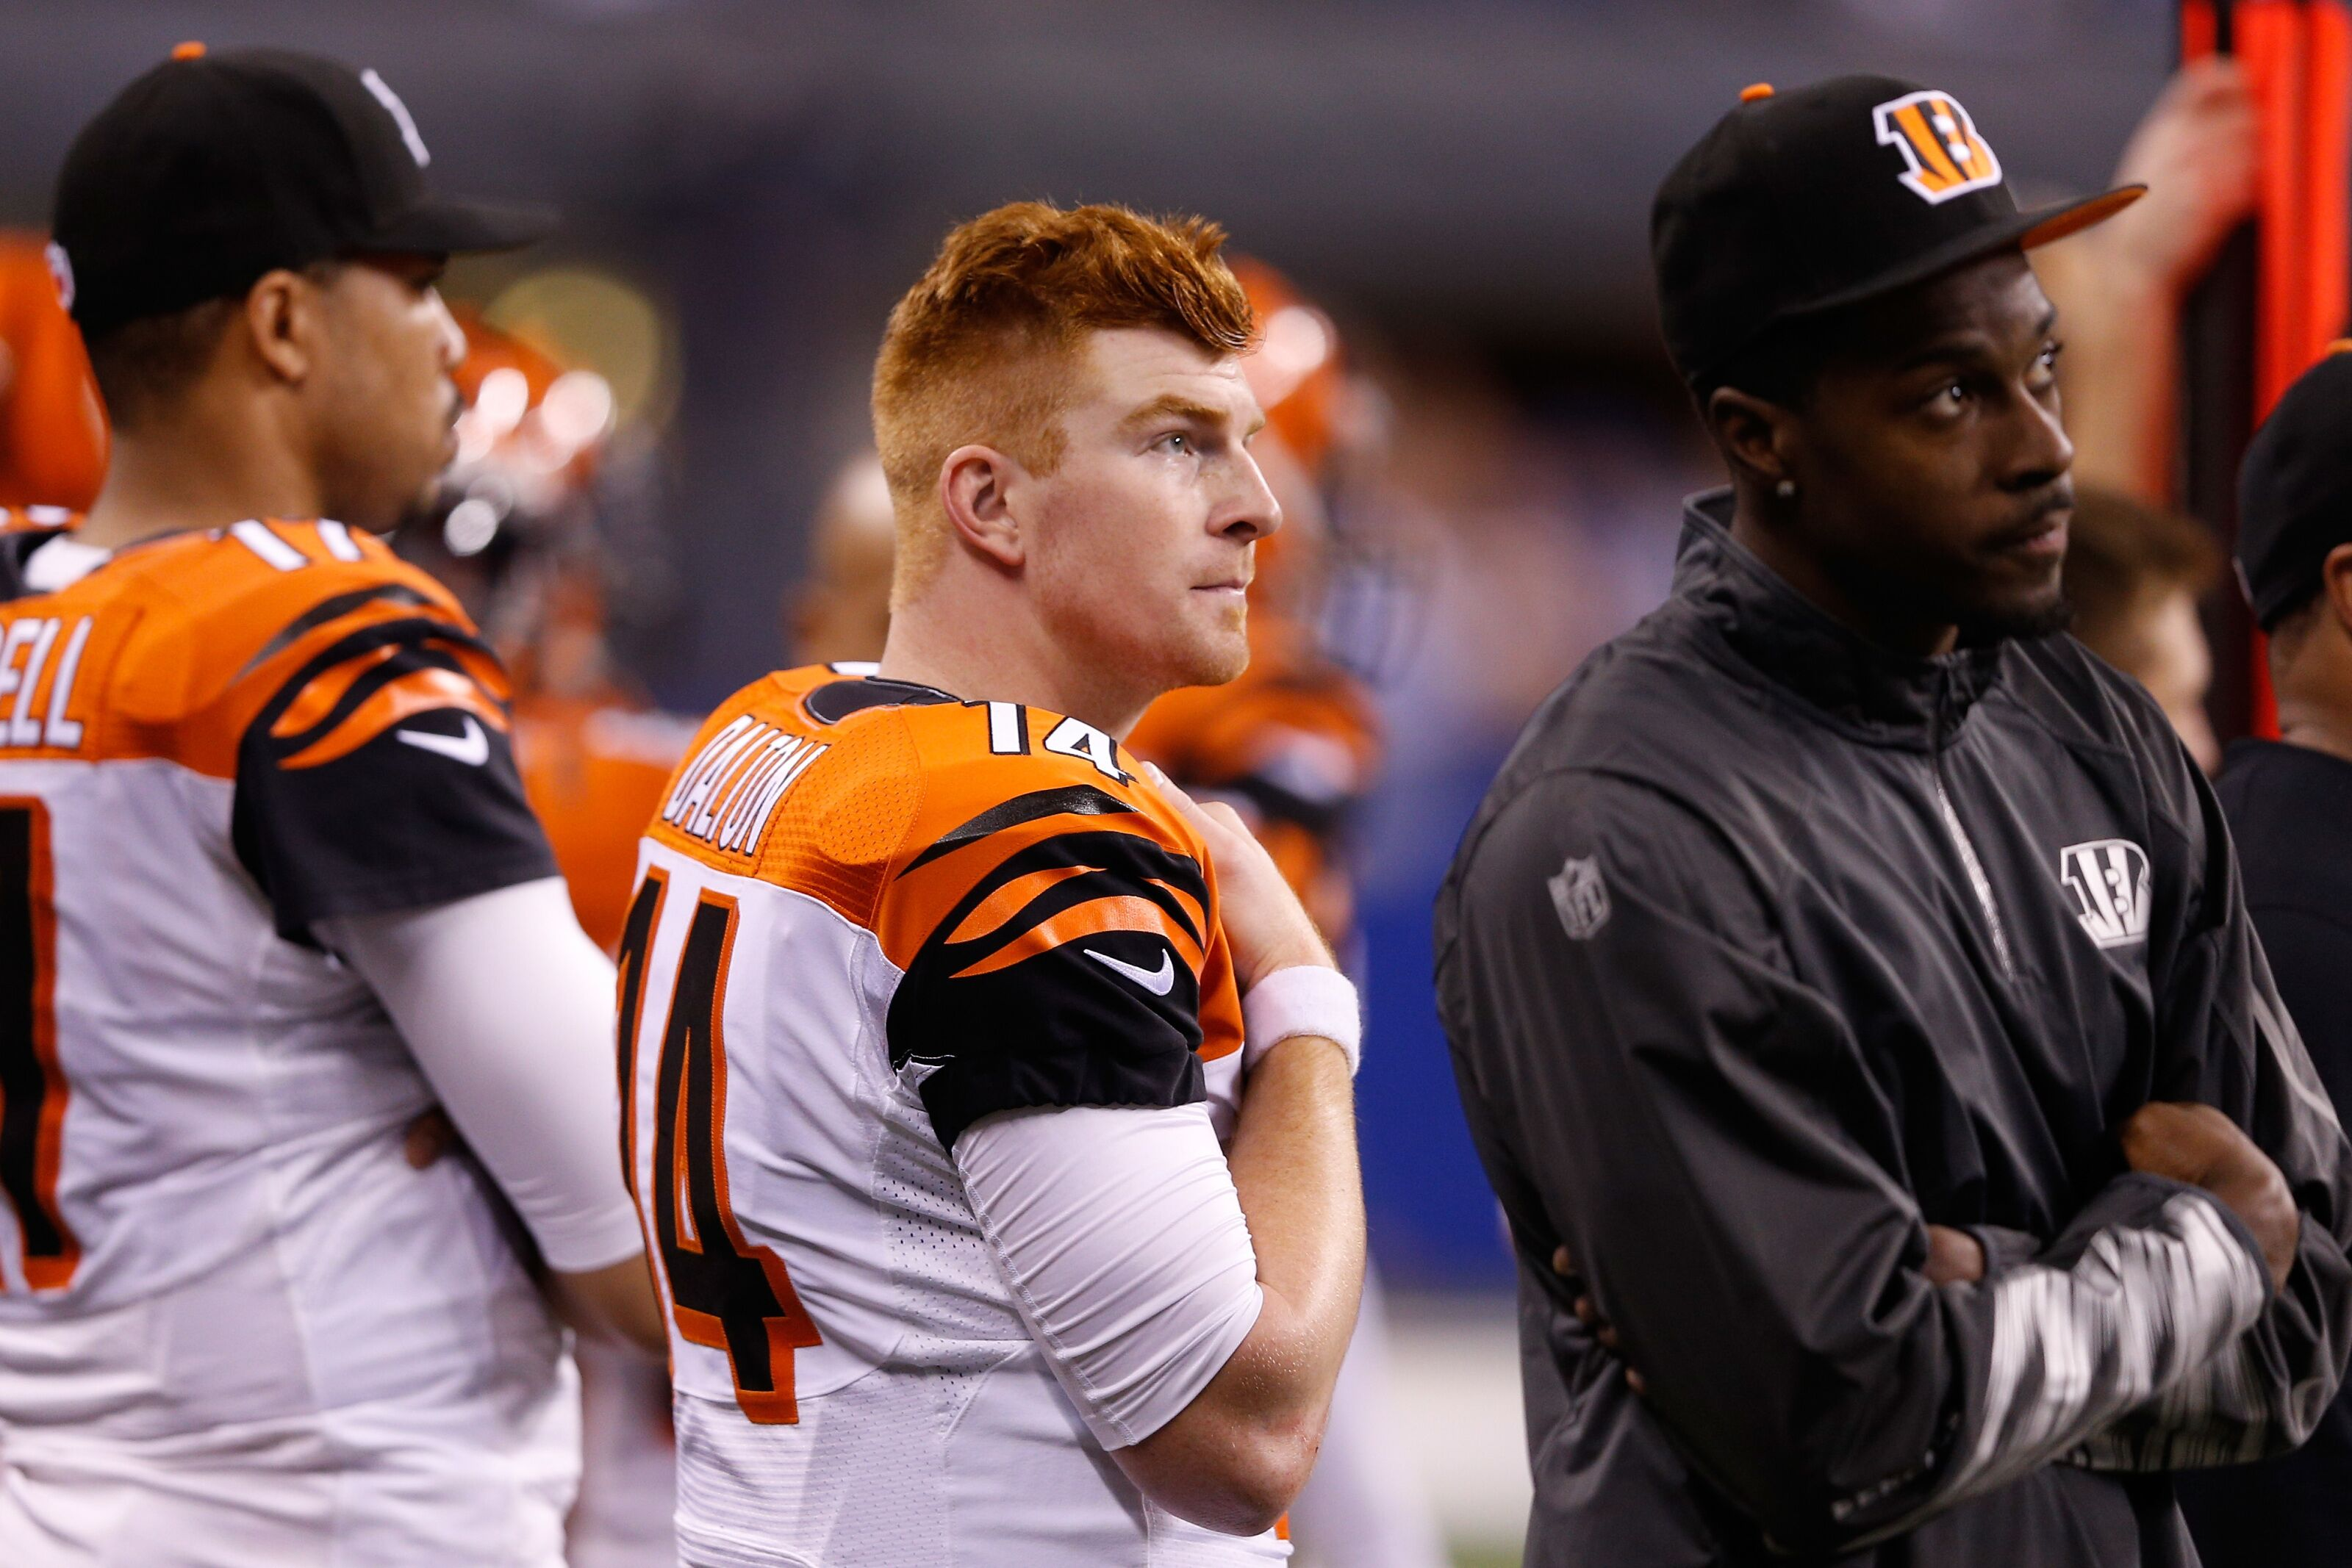 Enough Waiting: Bengals Need a Playoff Win in Next 3 Years